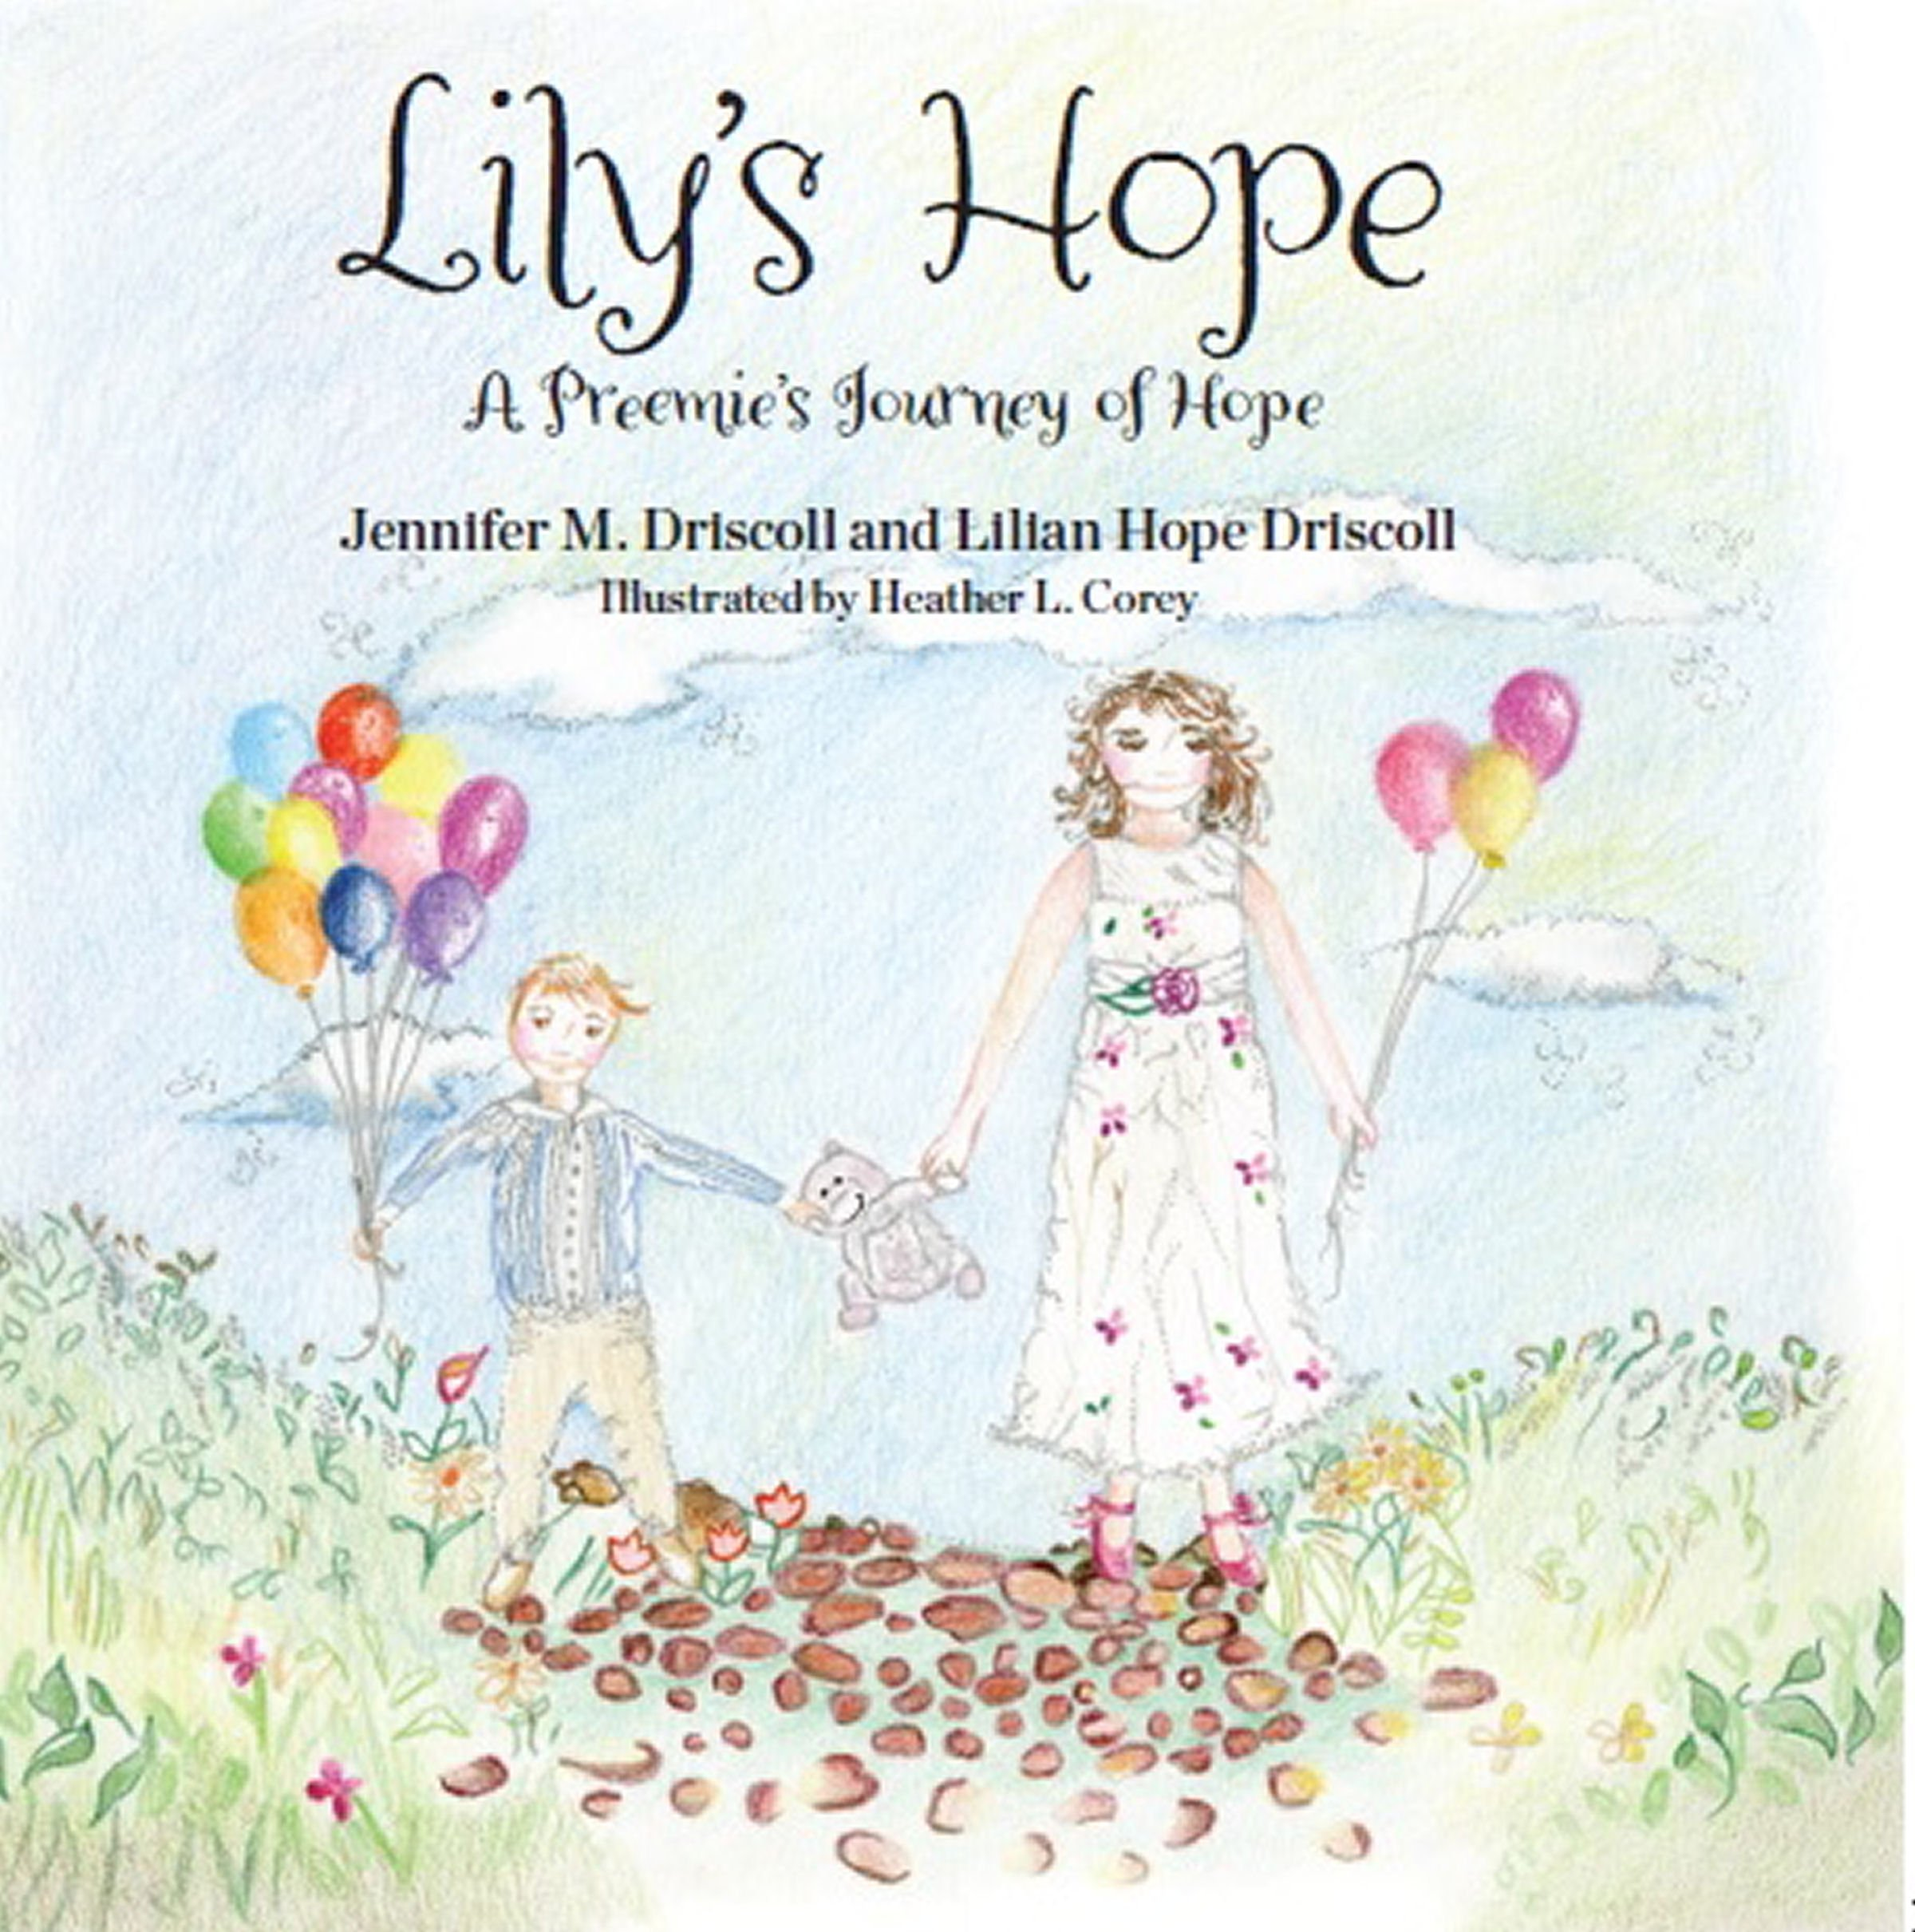 Lily's Hope: A preemie's journey of hope